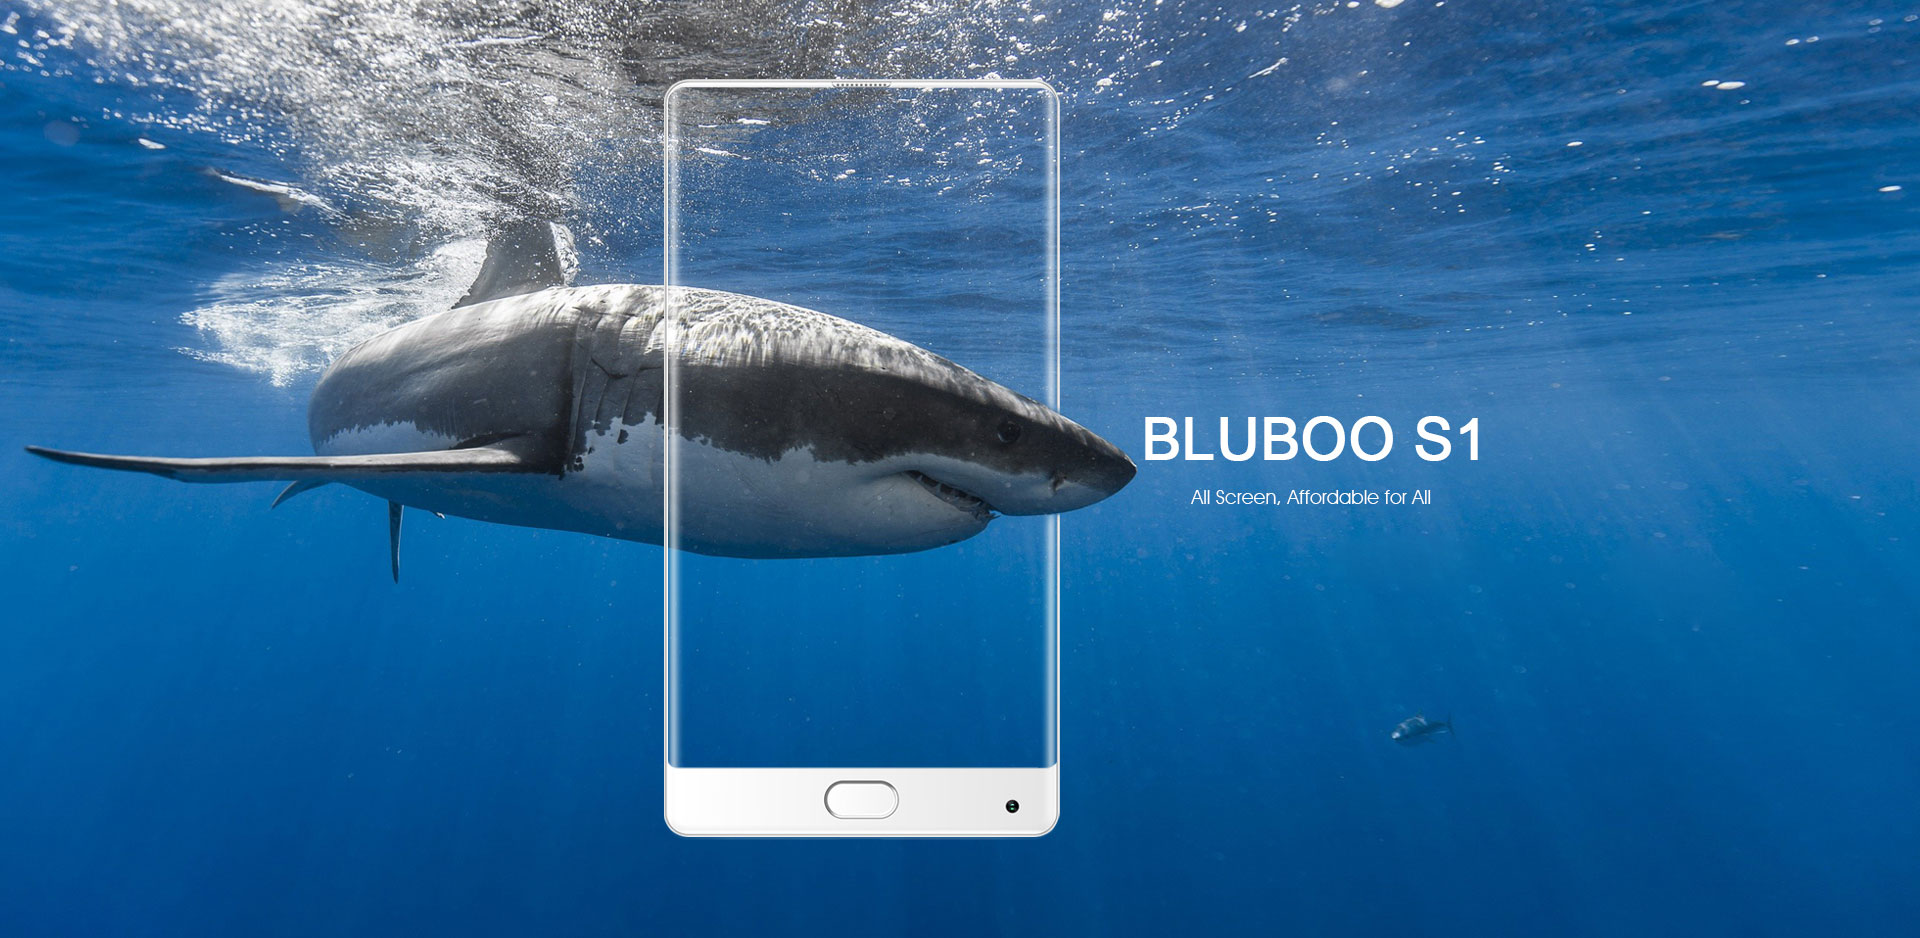 A detailed story about the smartphone BLUBOO S1